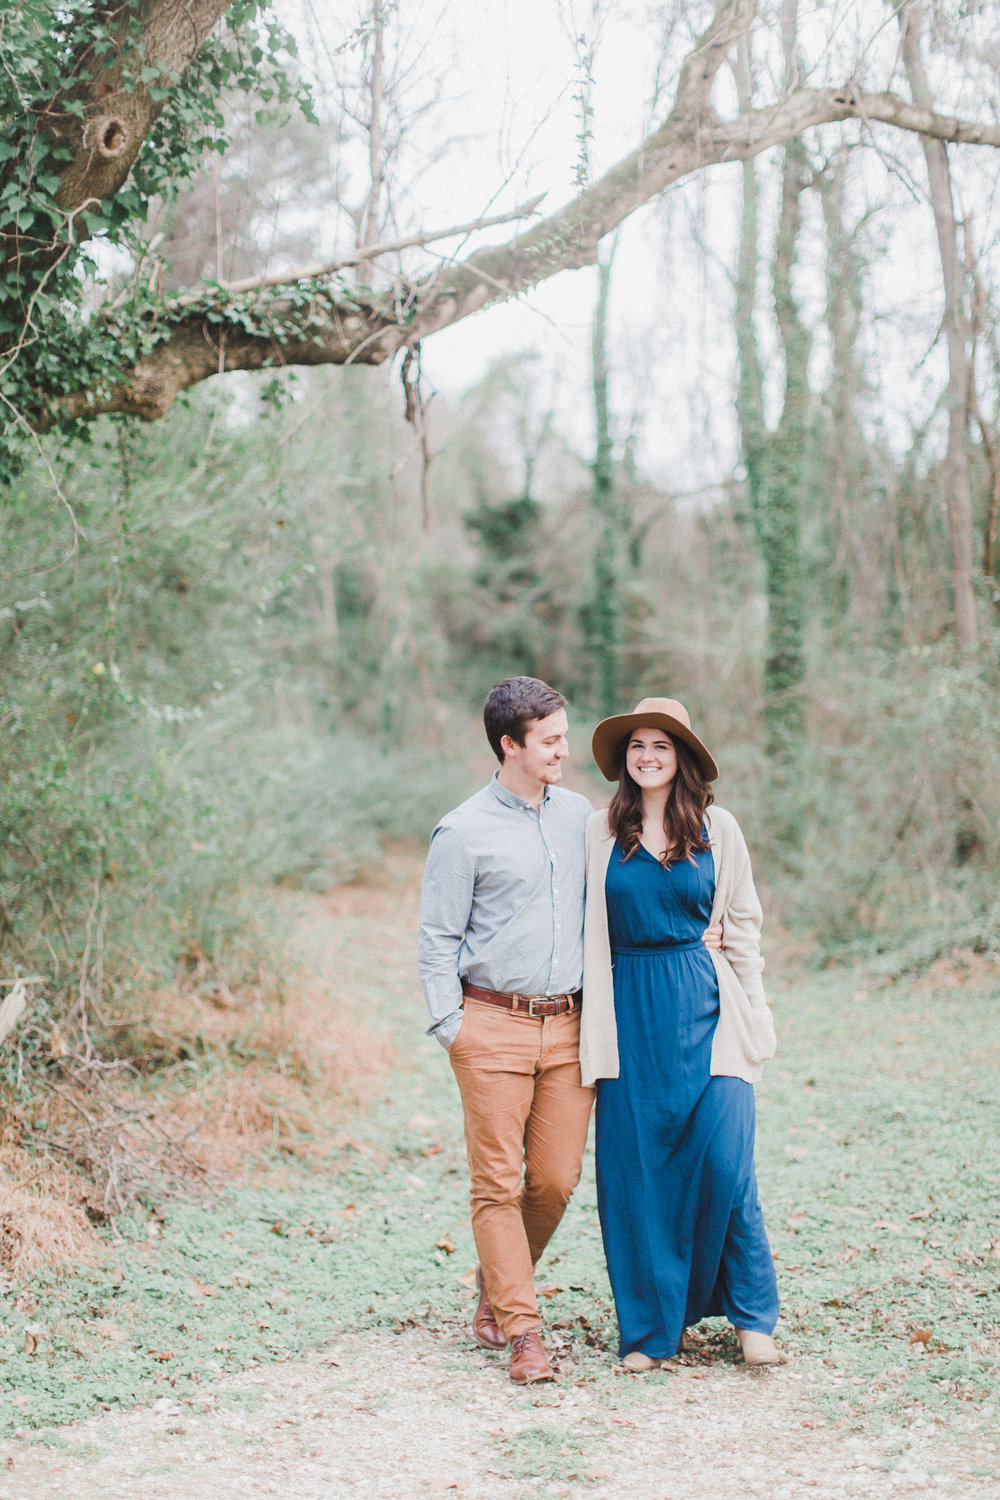 Their light and airy engagements were taken by  Annamarie Akins ! I cannot WAIT to see them rock the camera on wedding day!